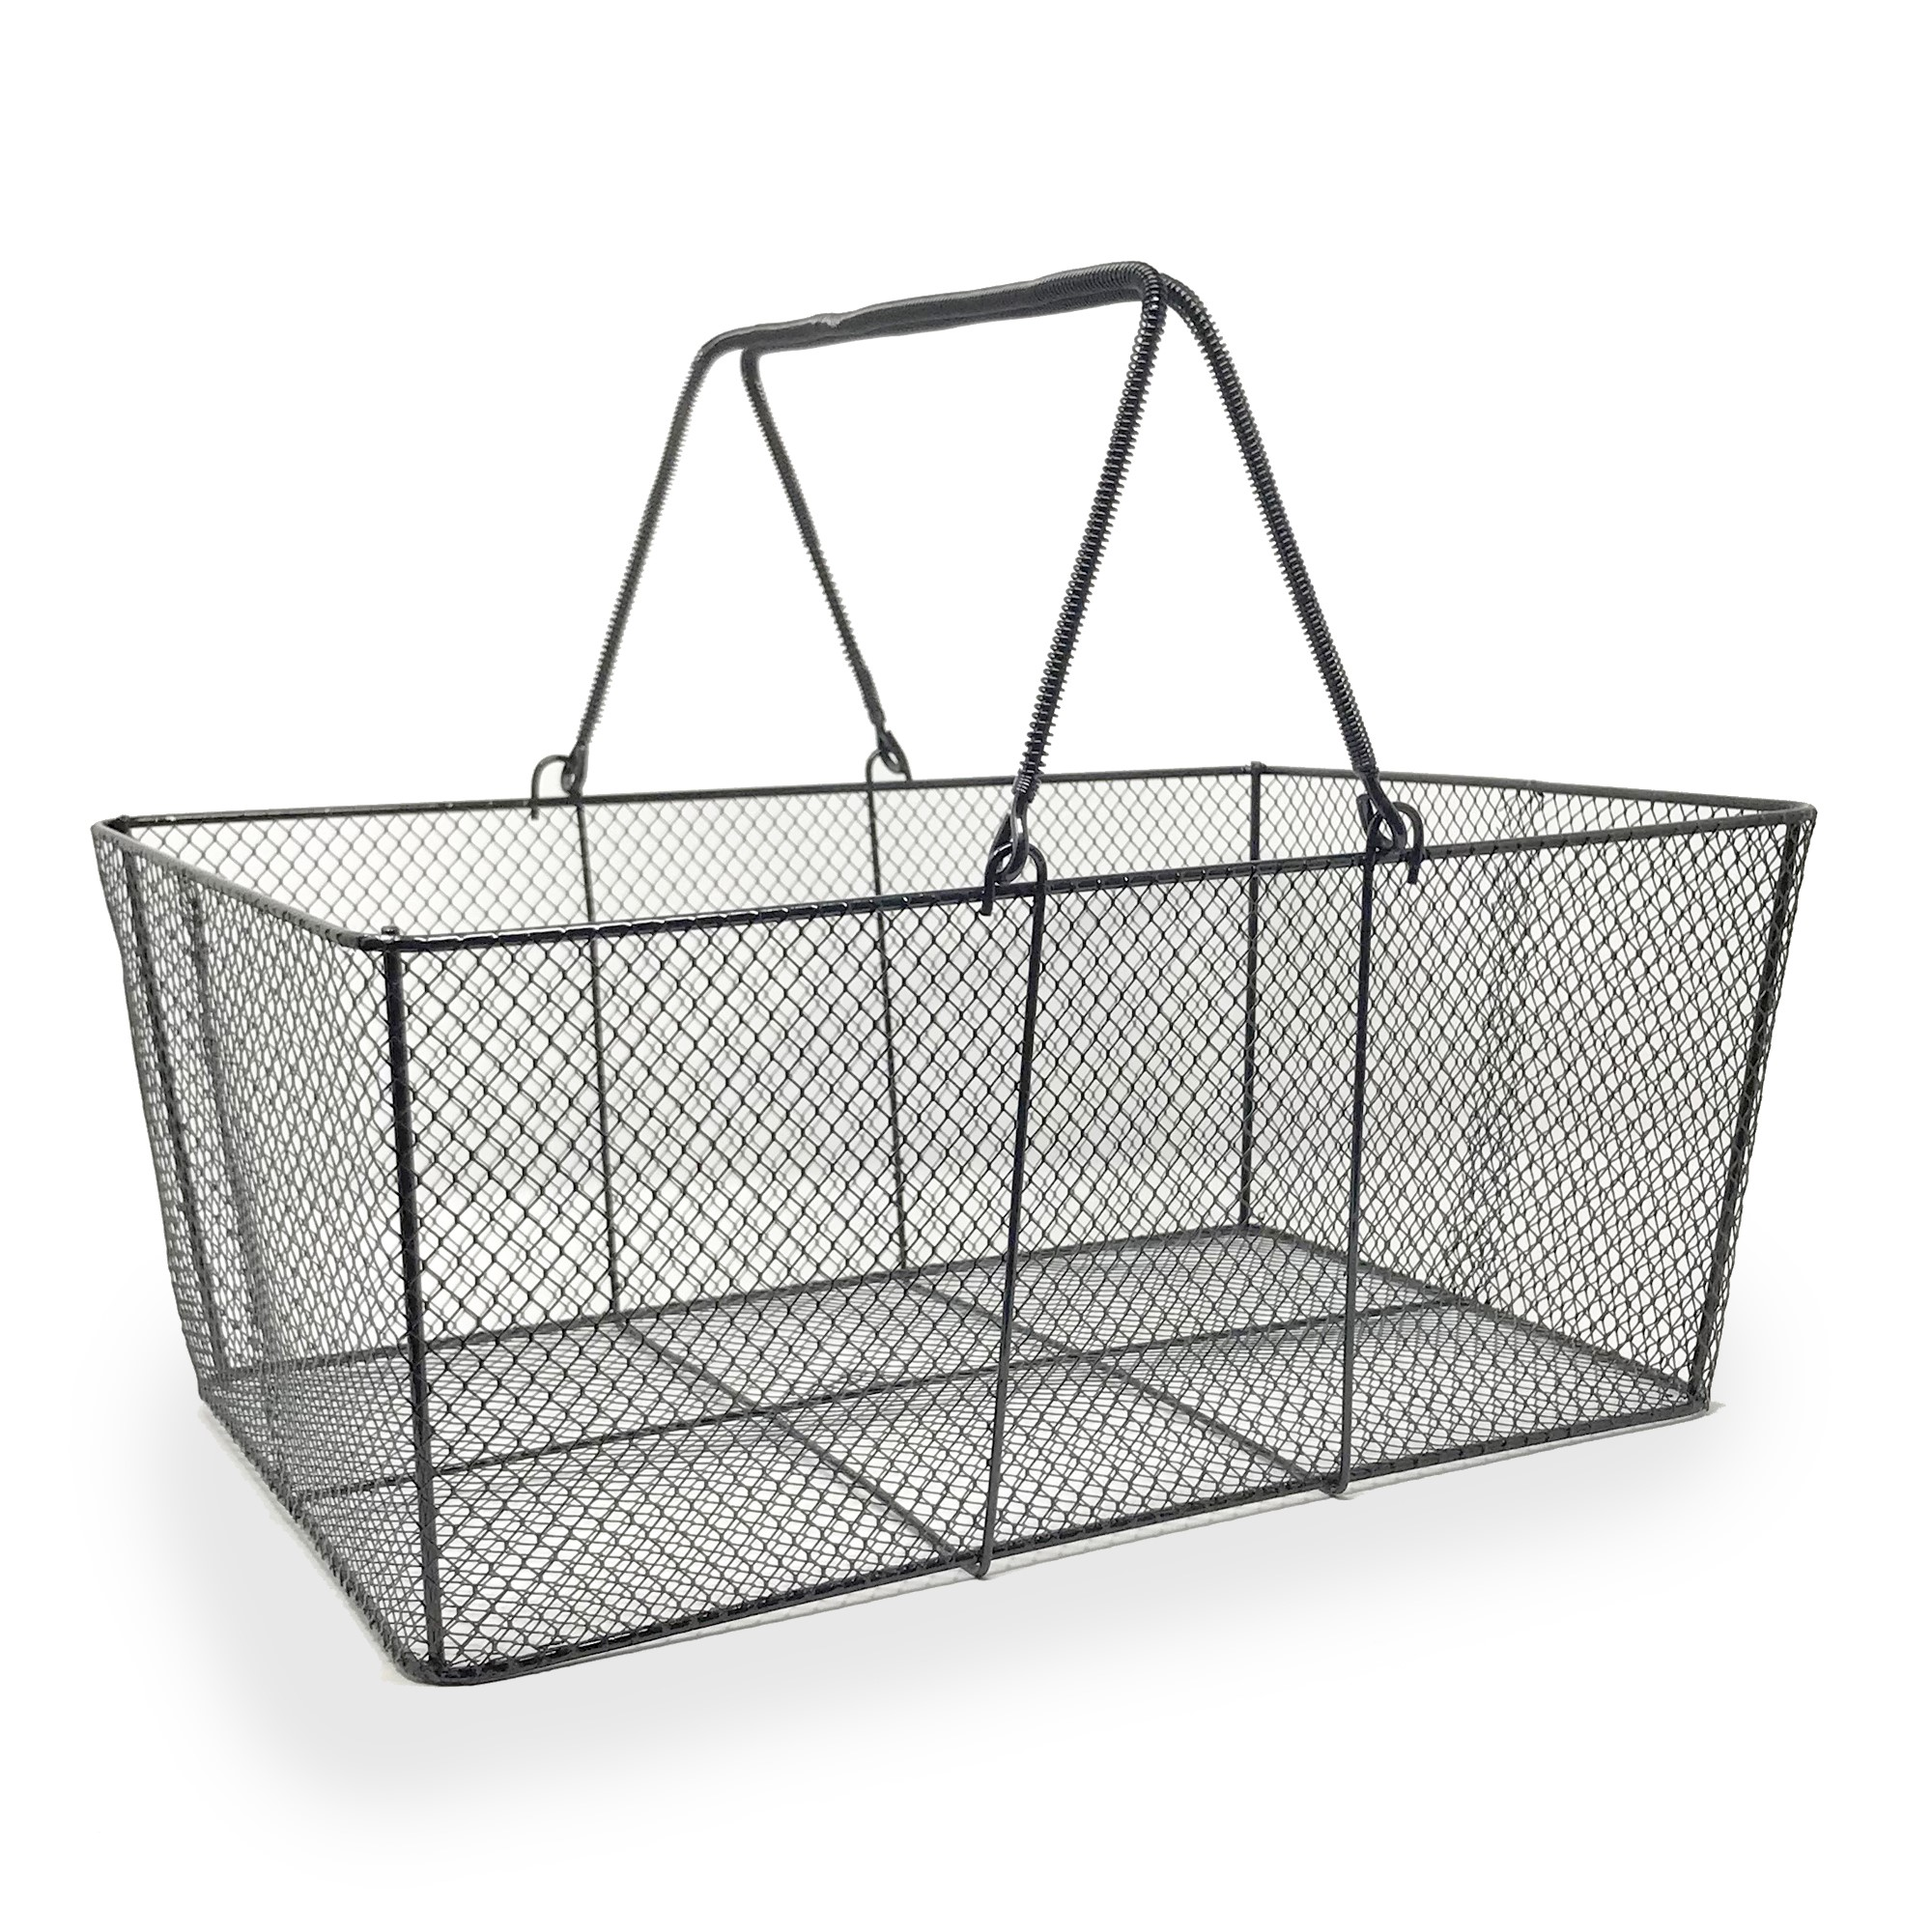 Swing Handle Baskets and Fixed Handle Baskets for Gift Basket Making ...